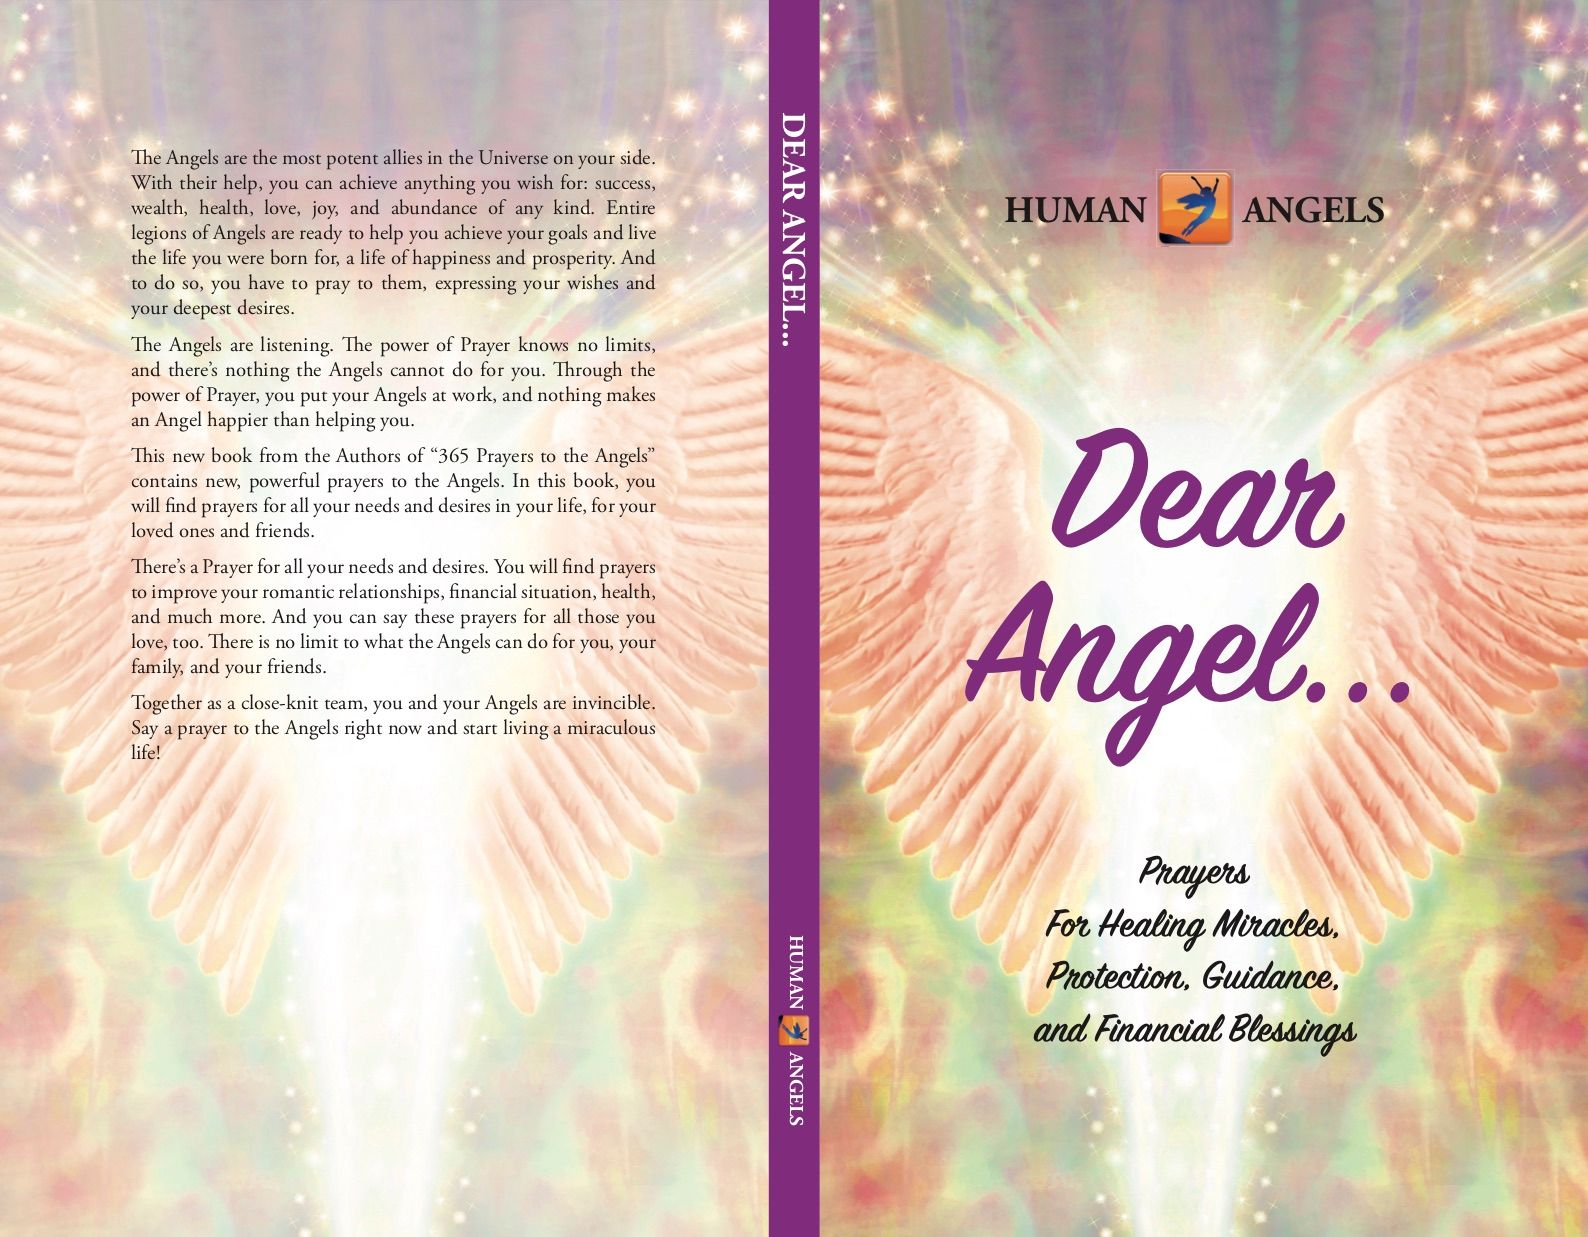 Dear-Angel-Cover-LARGE